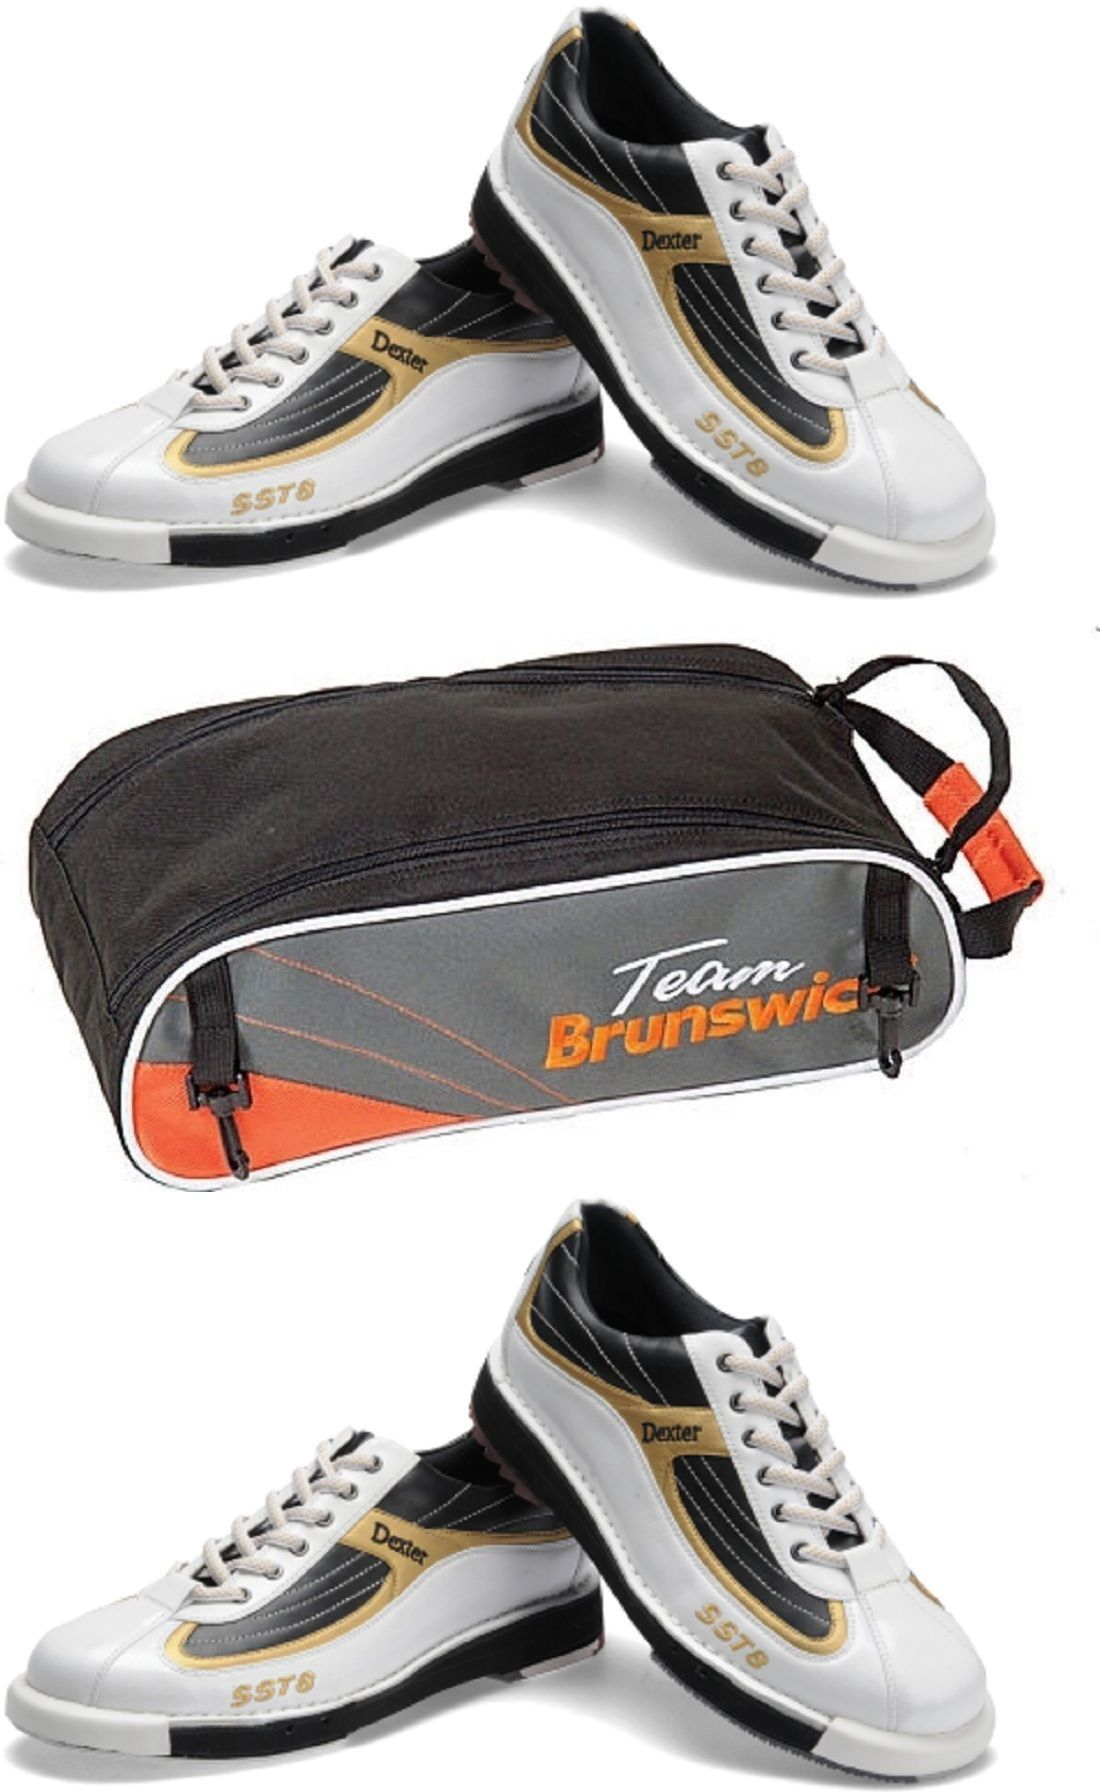 Men 159106 Mens Dexter Sst 8 Bowling Shoes And Brunswick Shoe Bag Size 10 1